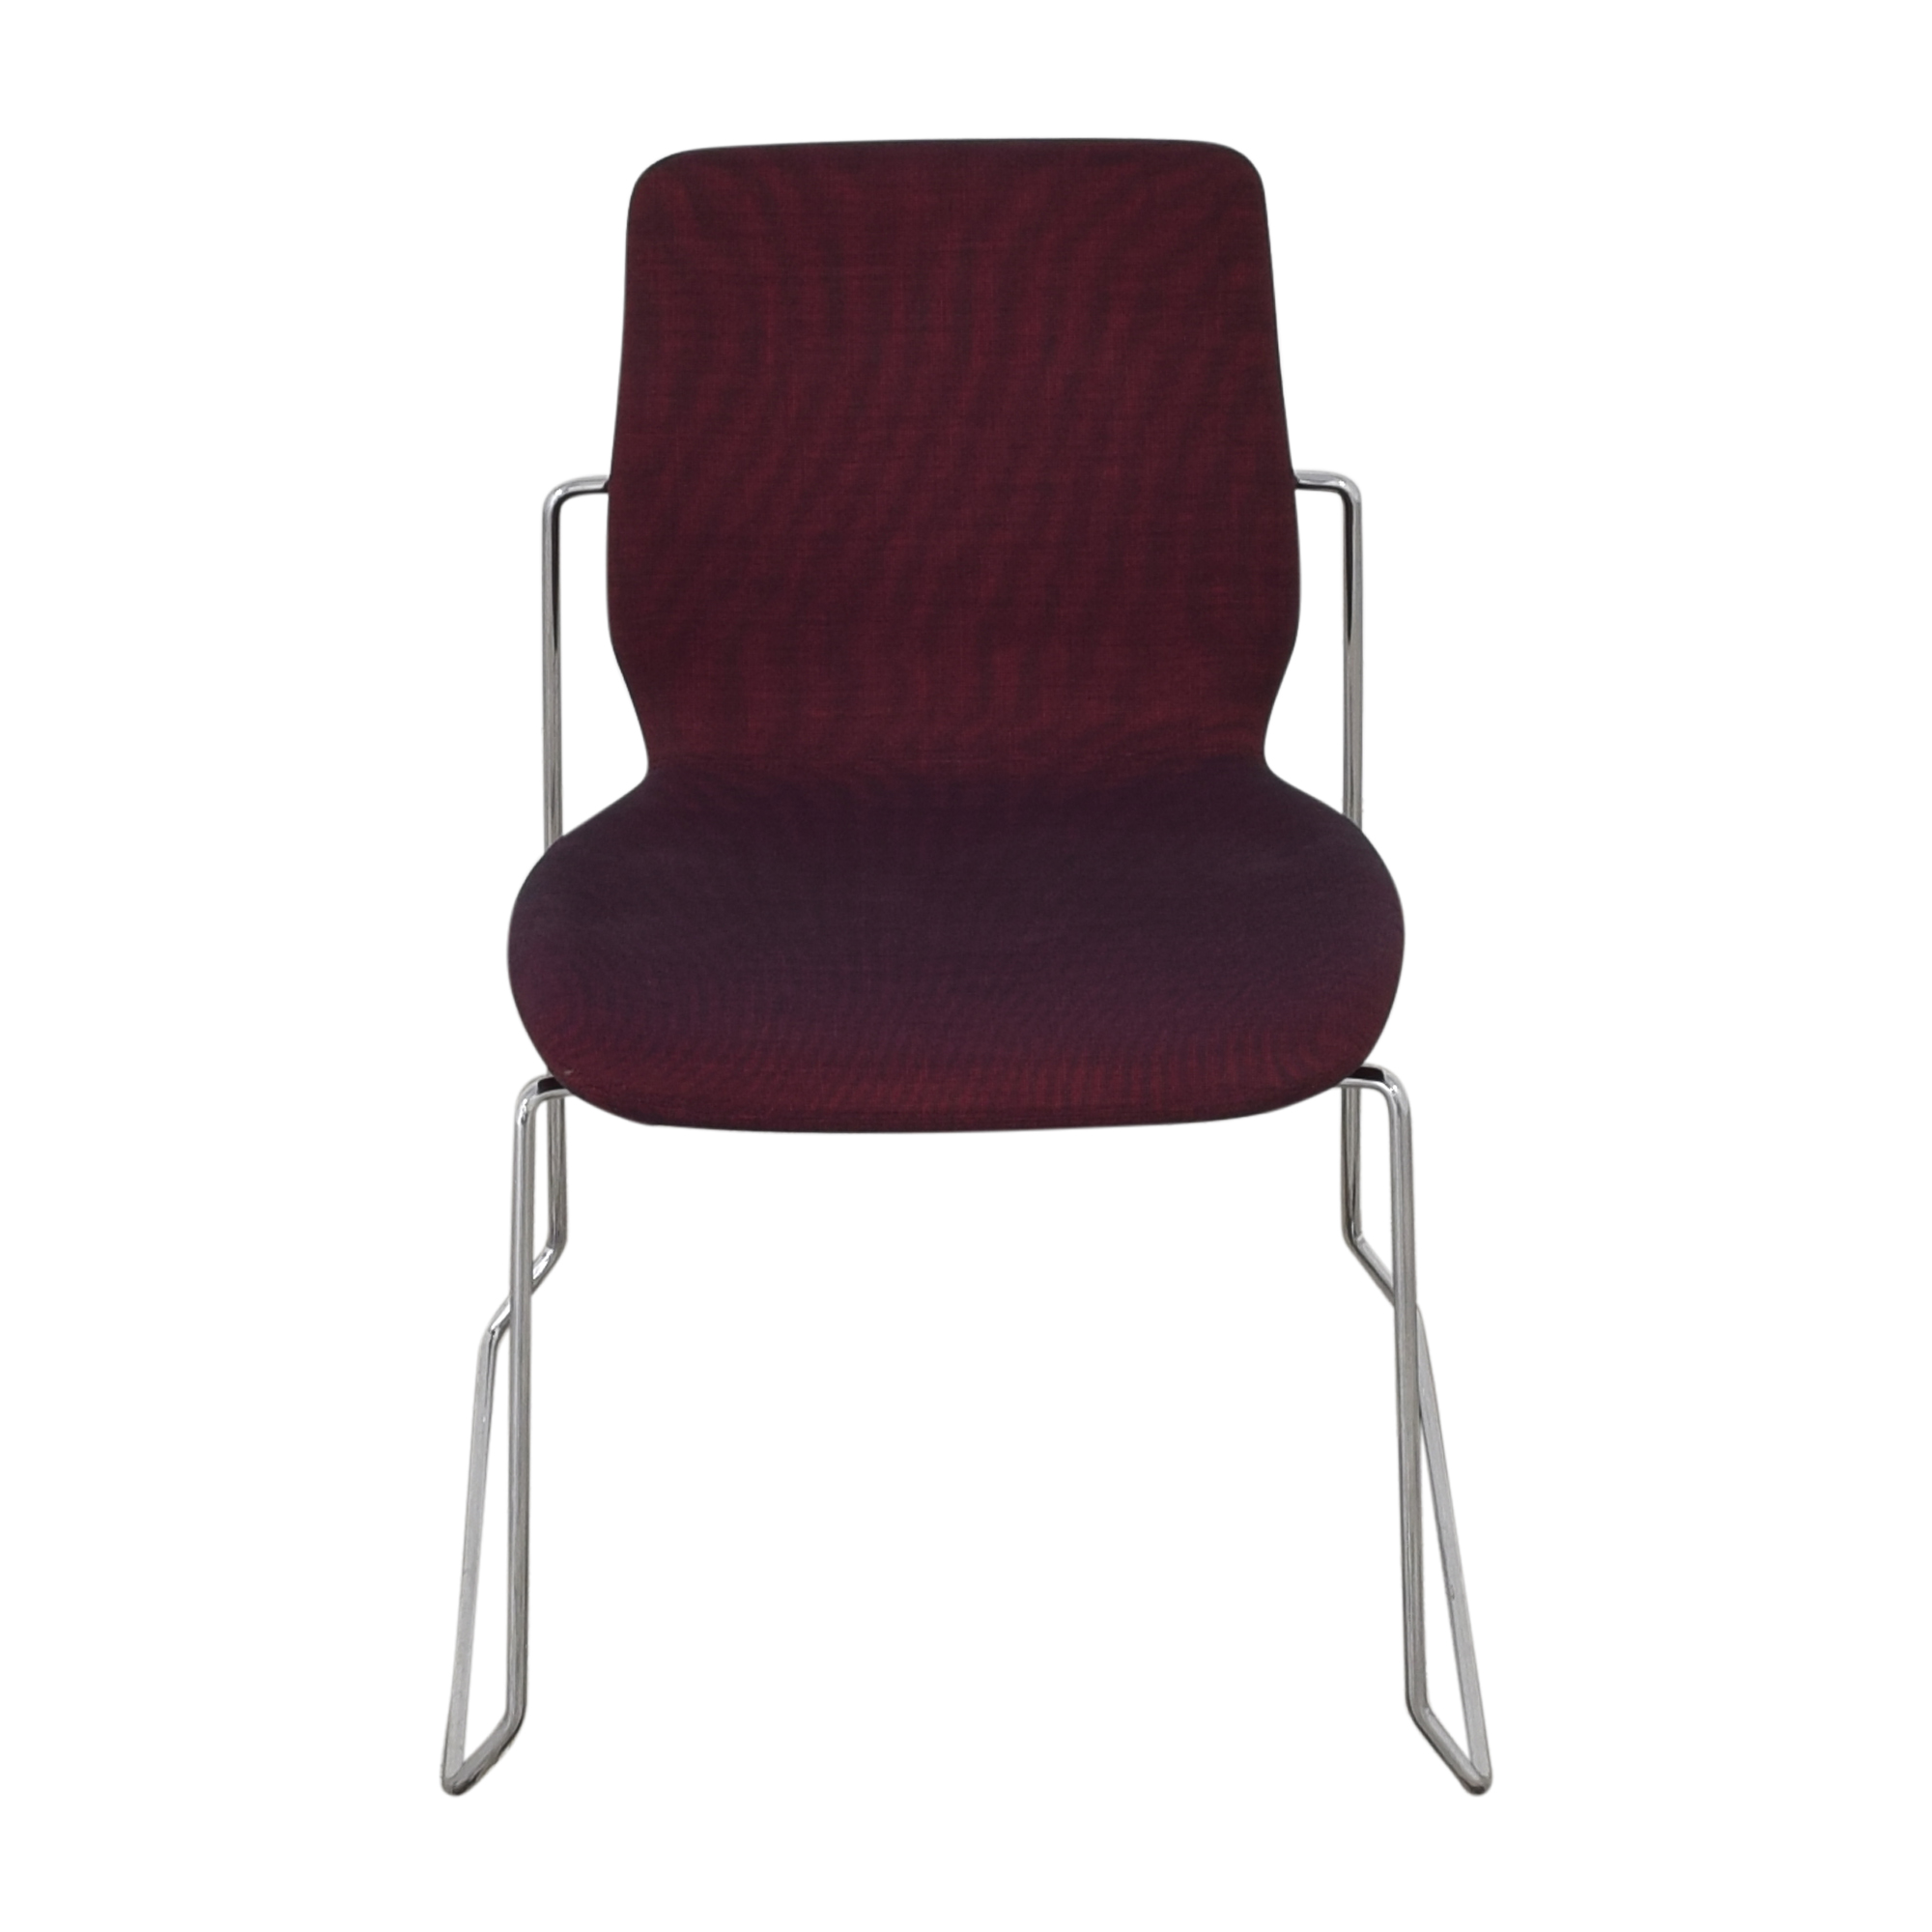 Koleksiyon Koleksiyon Asanda Armless Chair for sale